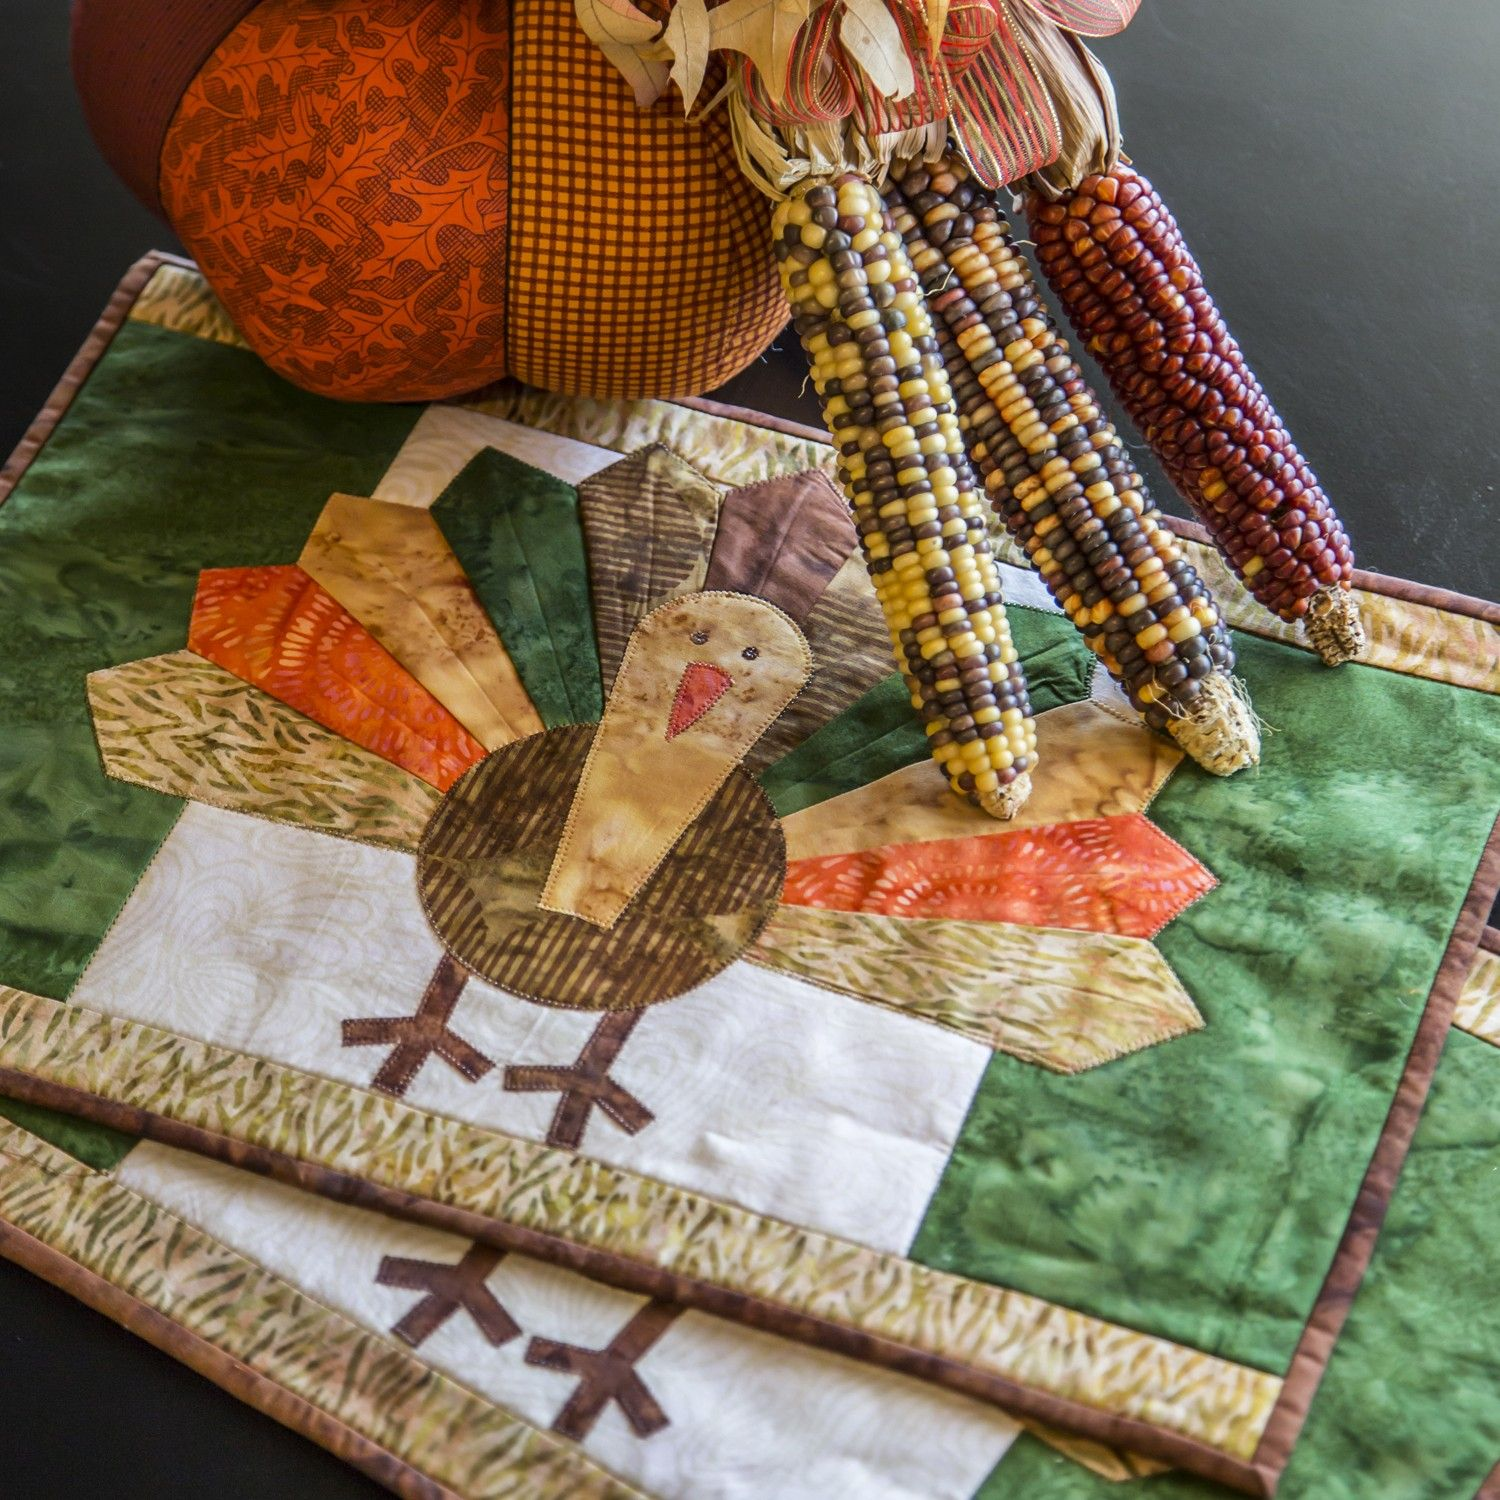 Free turkey placemats sewing quilting pattern sew pattern lets talk turkey placemats free quilting sewing pattern download jeuxipadfo Gallery